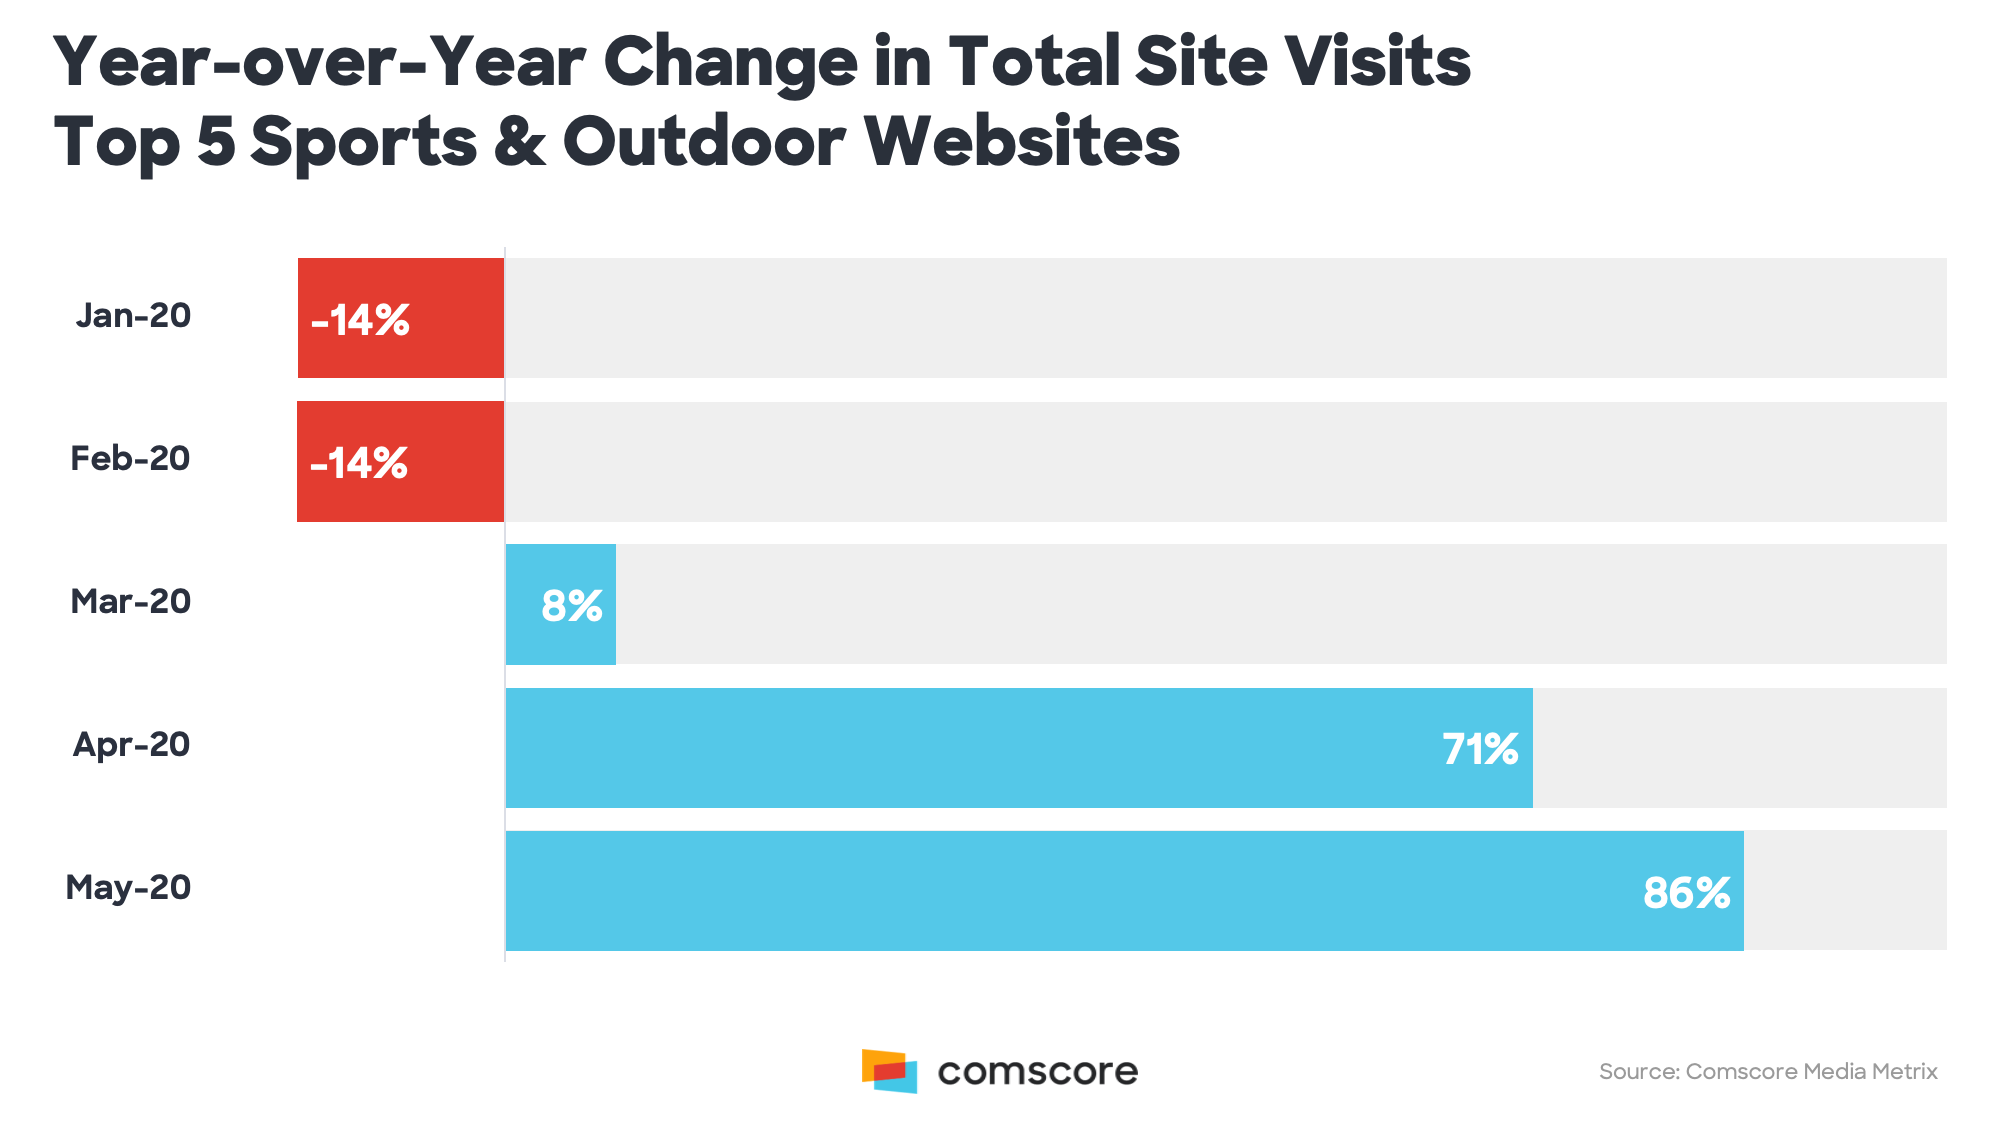 Year-over-Year Change in Total Site Visits Top 5 Sports and Outdoor Websites